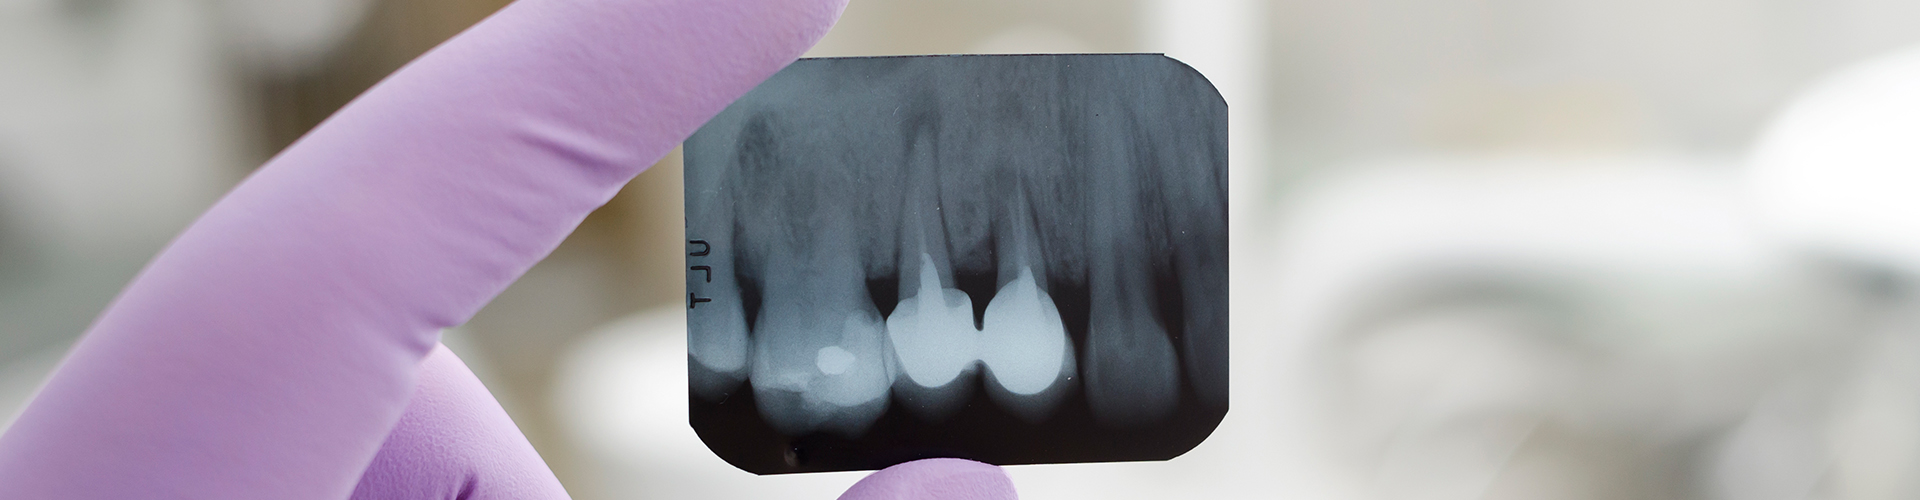 Dentist Reviewing Teeth X-Rays in Seattle Dental Office